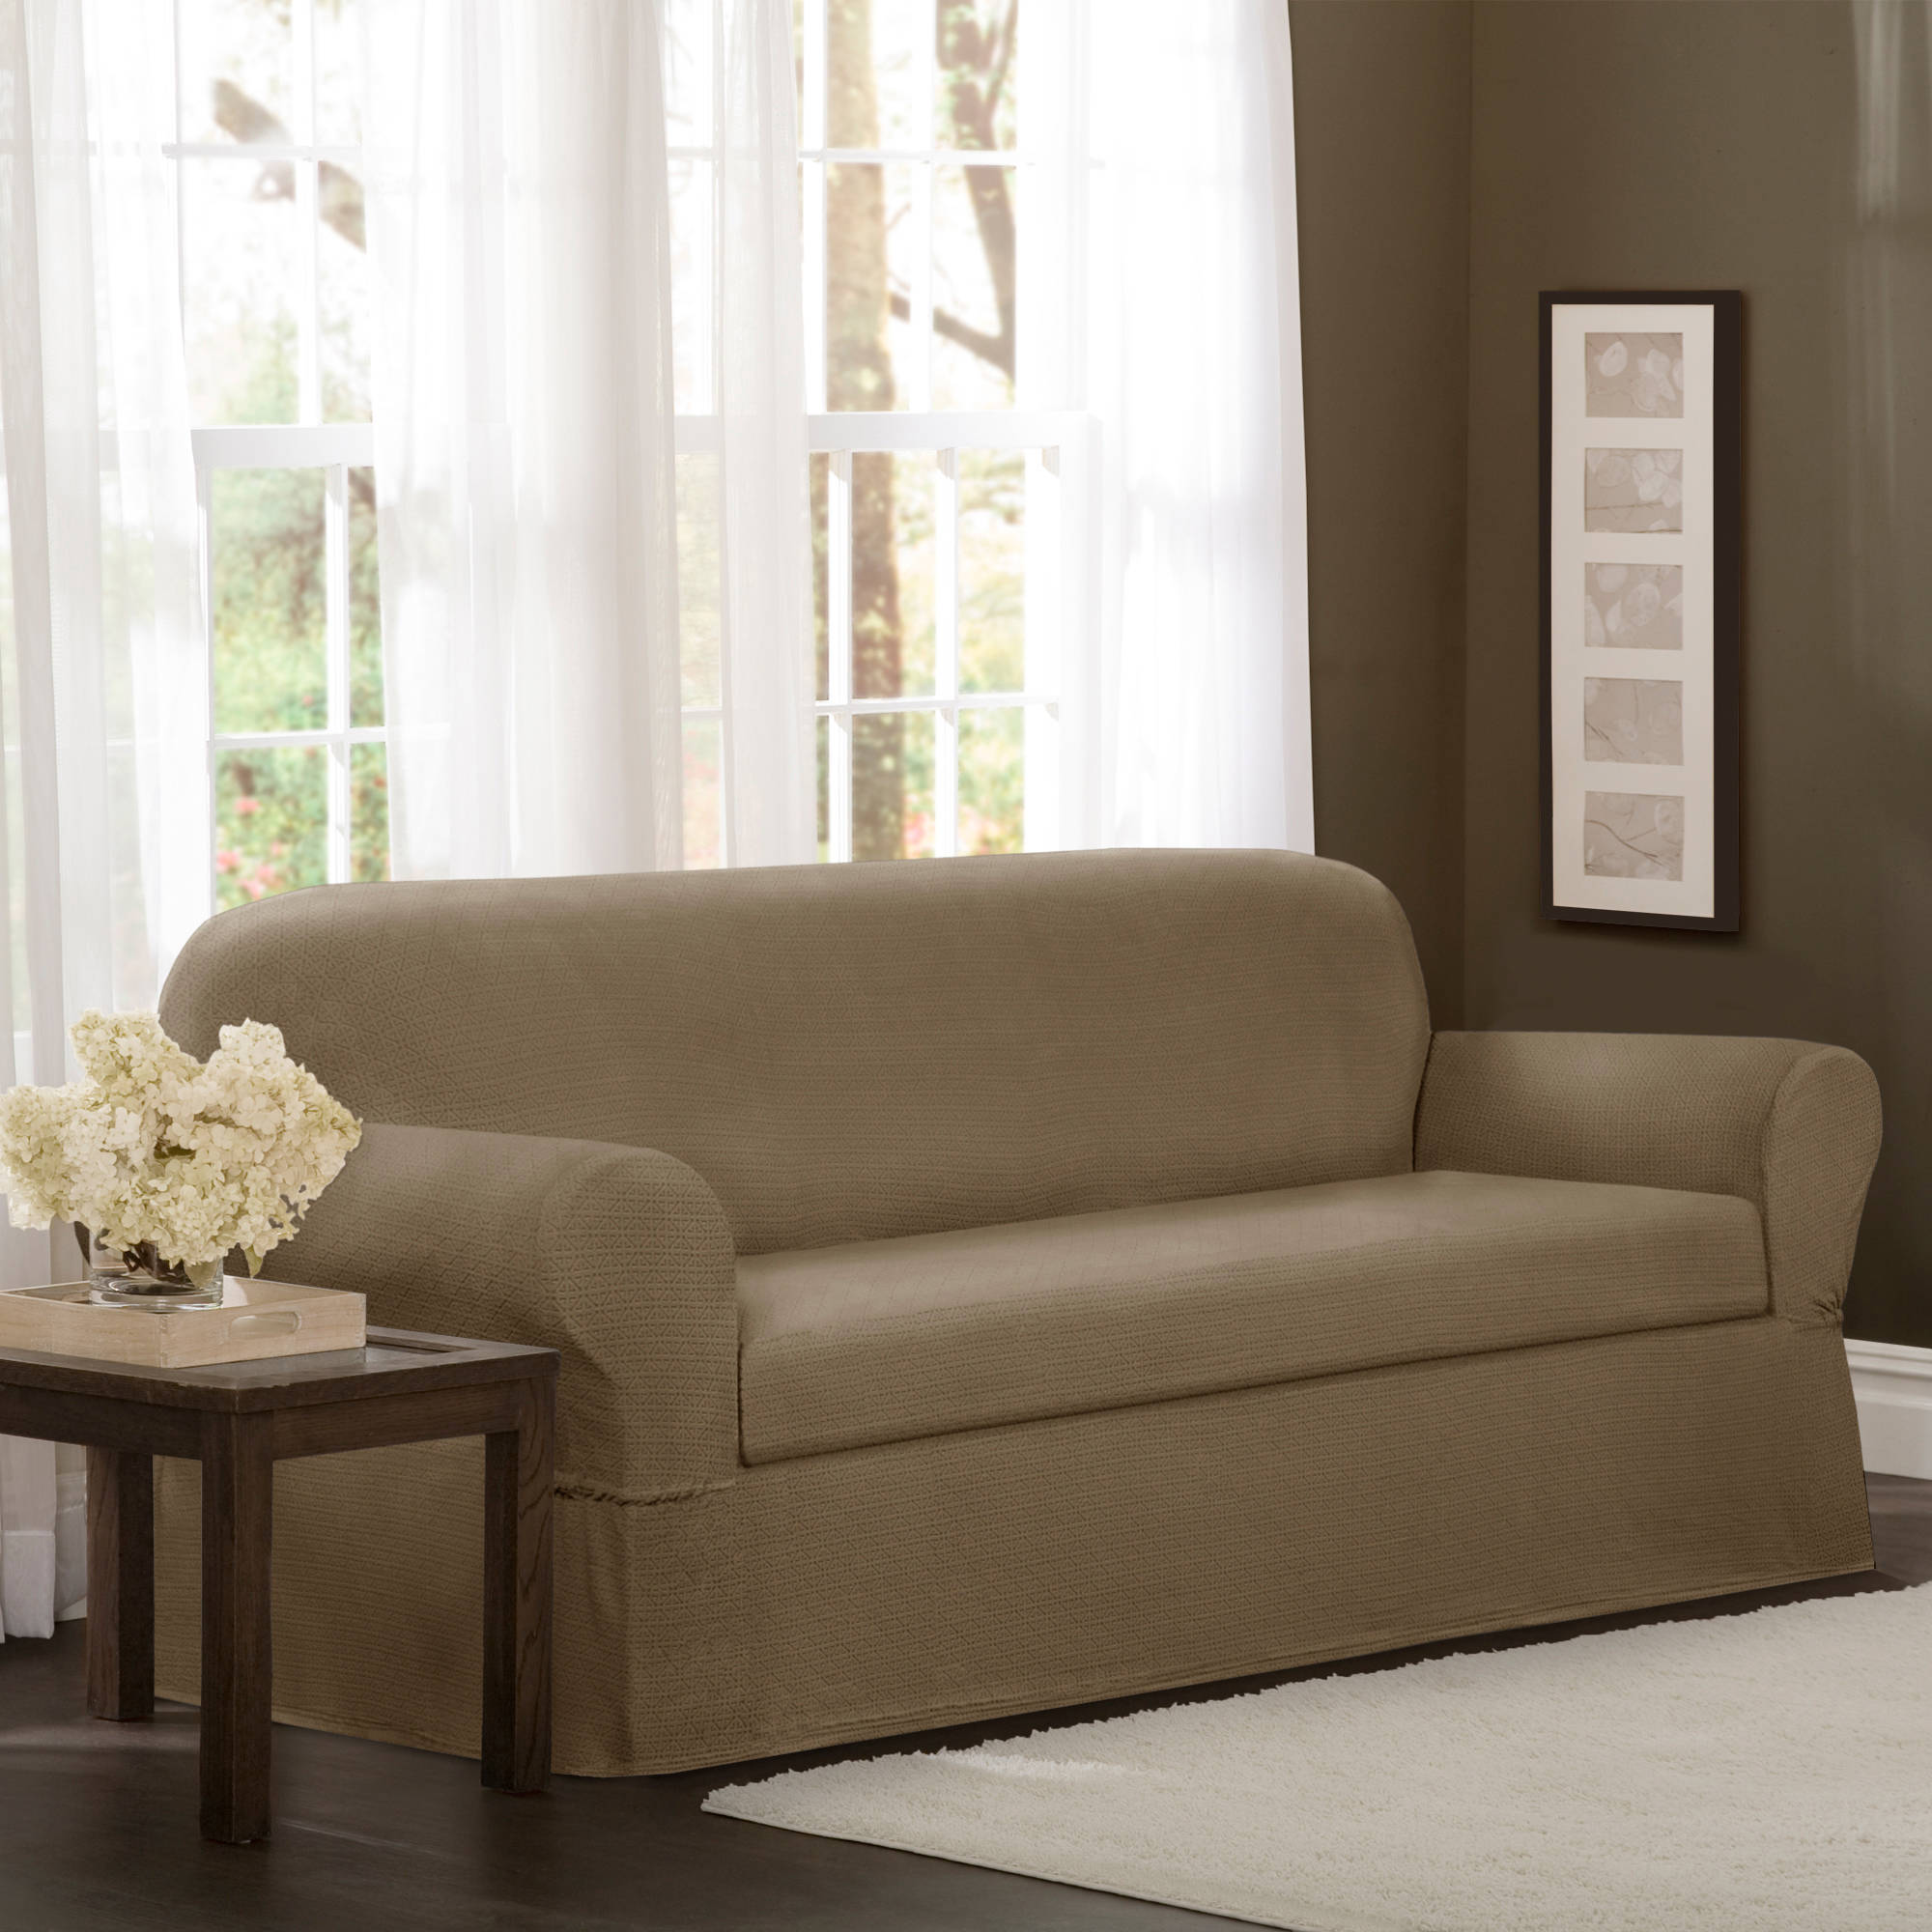 : sectional slipcovers walmart - Sectionals, Sofas & Couches